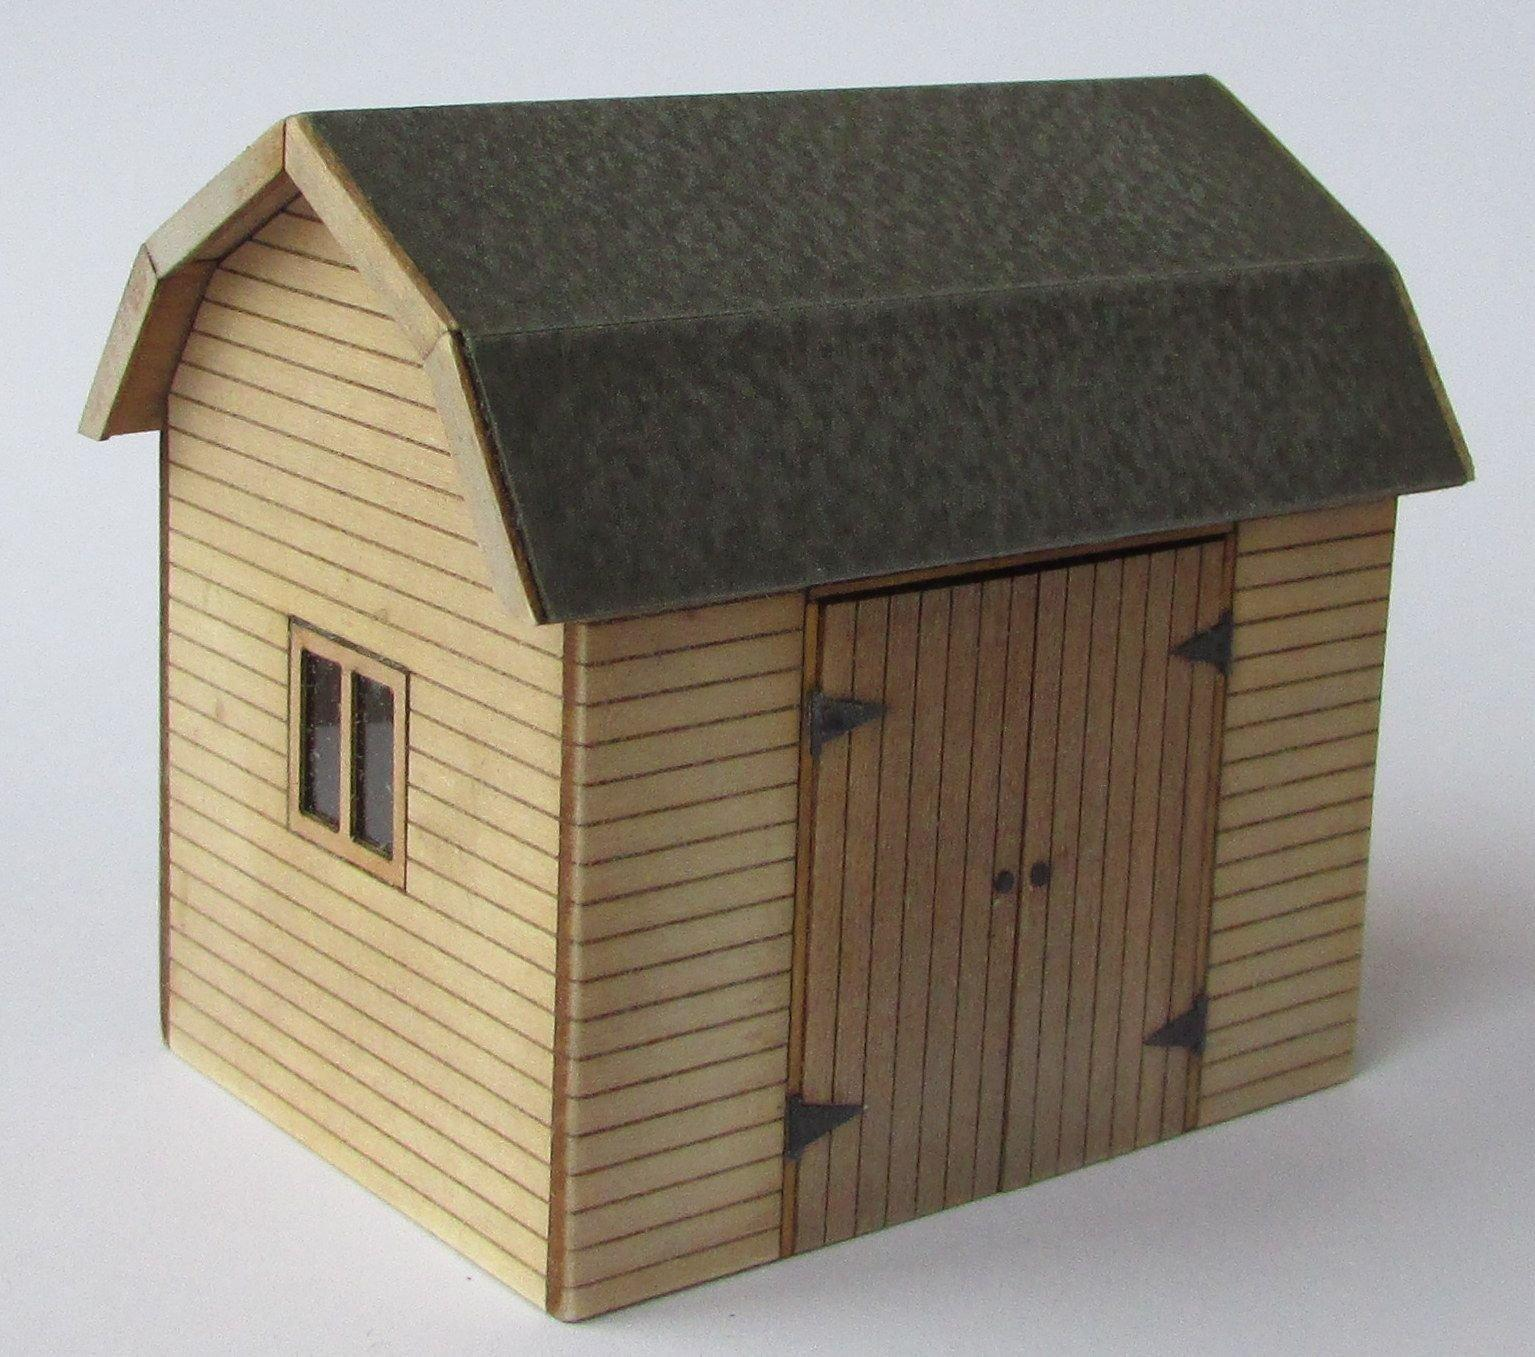 1/48th scale Dutch Workshop or Shed Kit